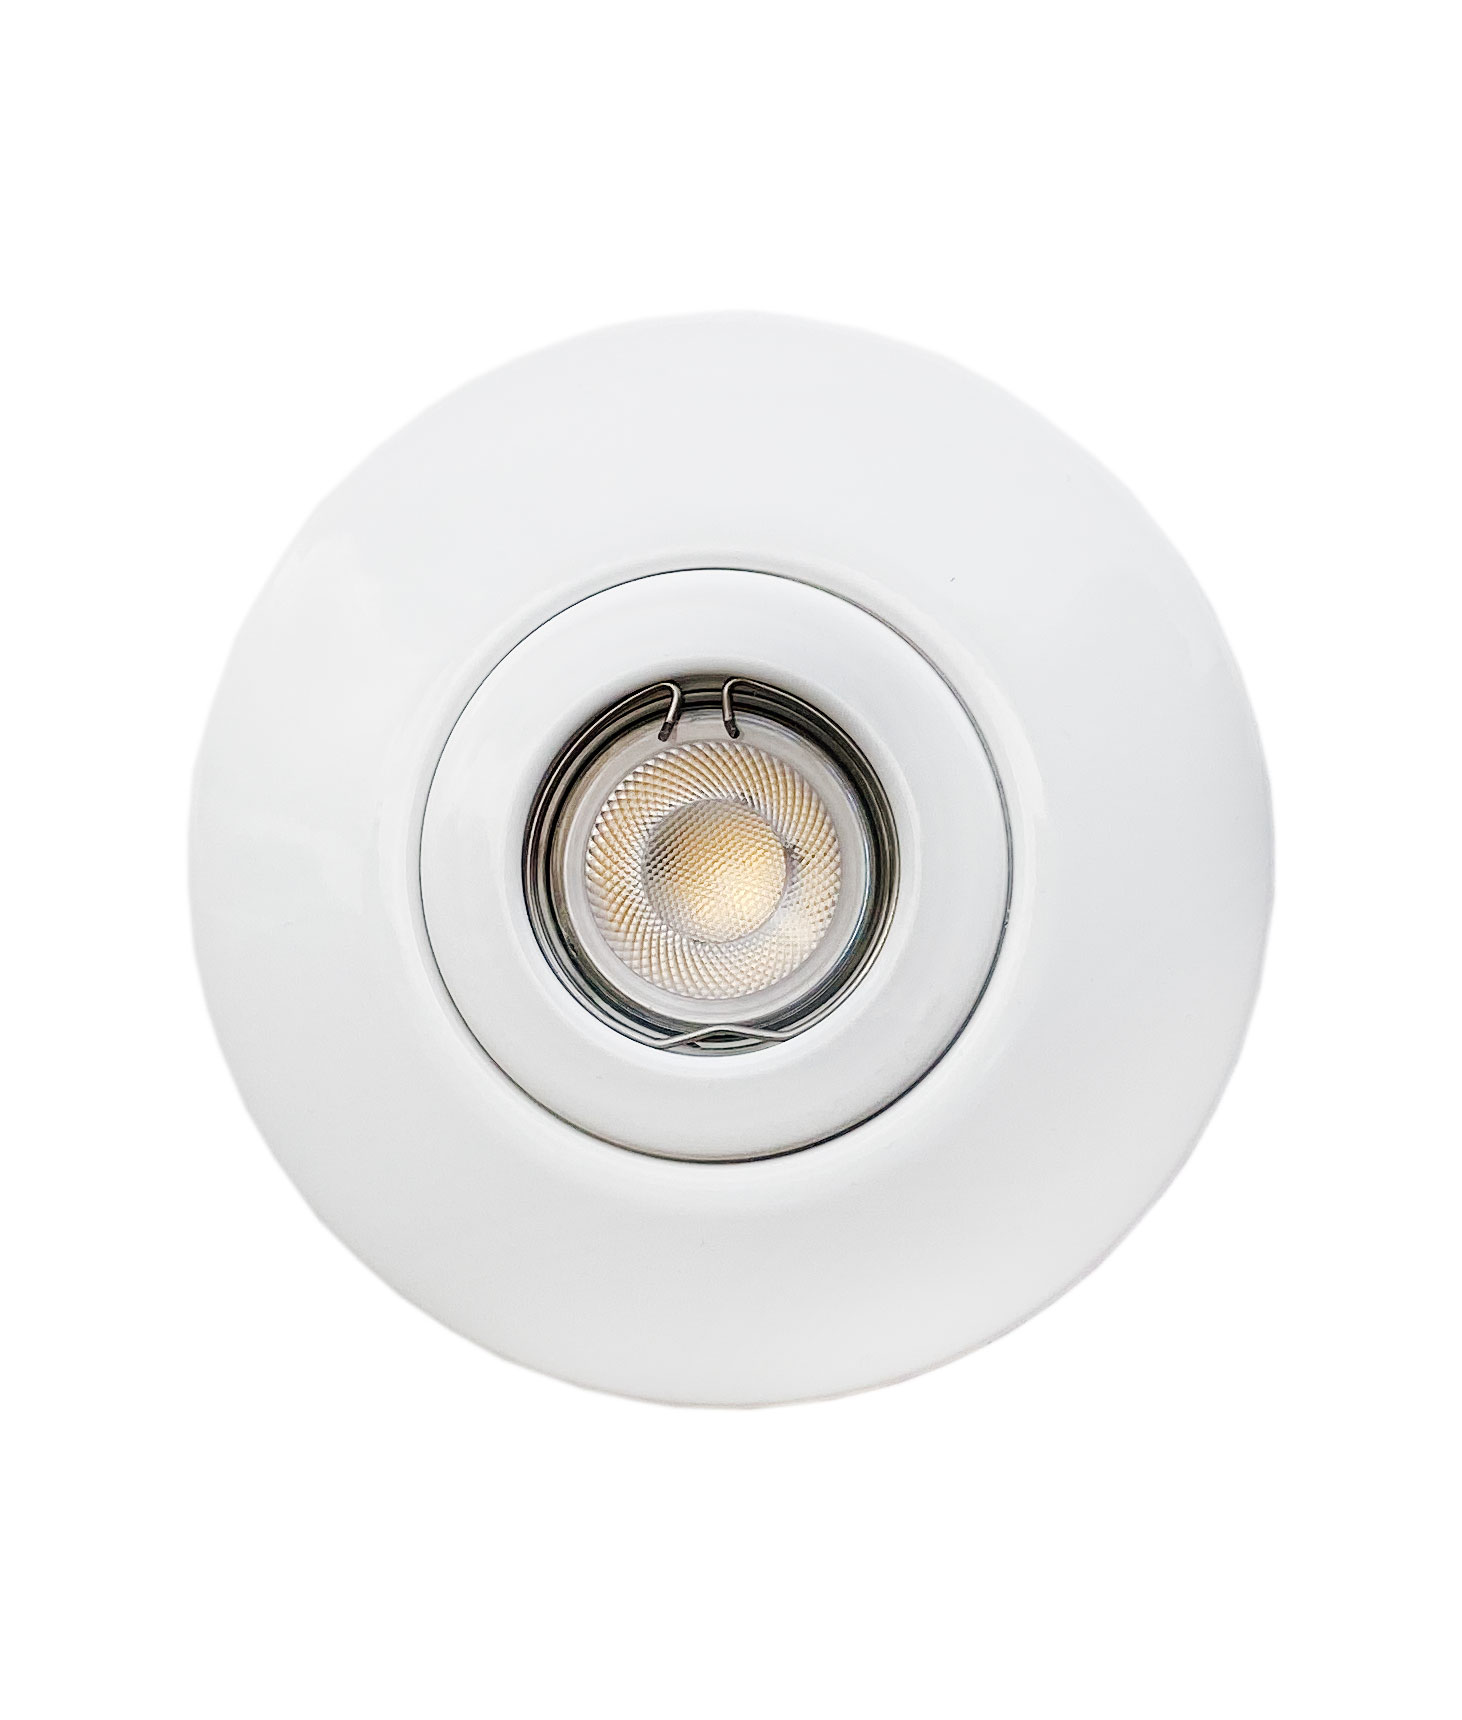 LED Downlight Converter - Four Finishes